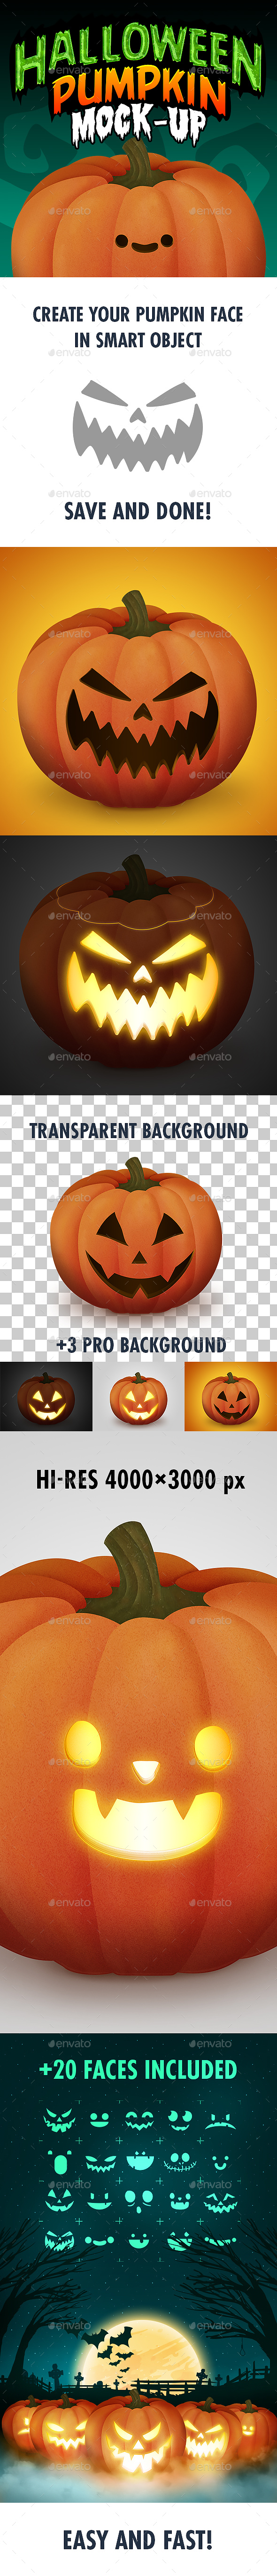 Halloween Pumpkin Face Mock-Up - Product Mock-Ups Graphics